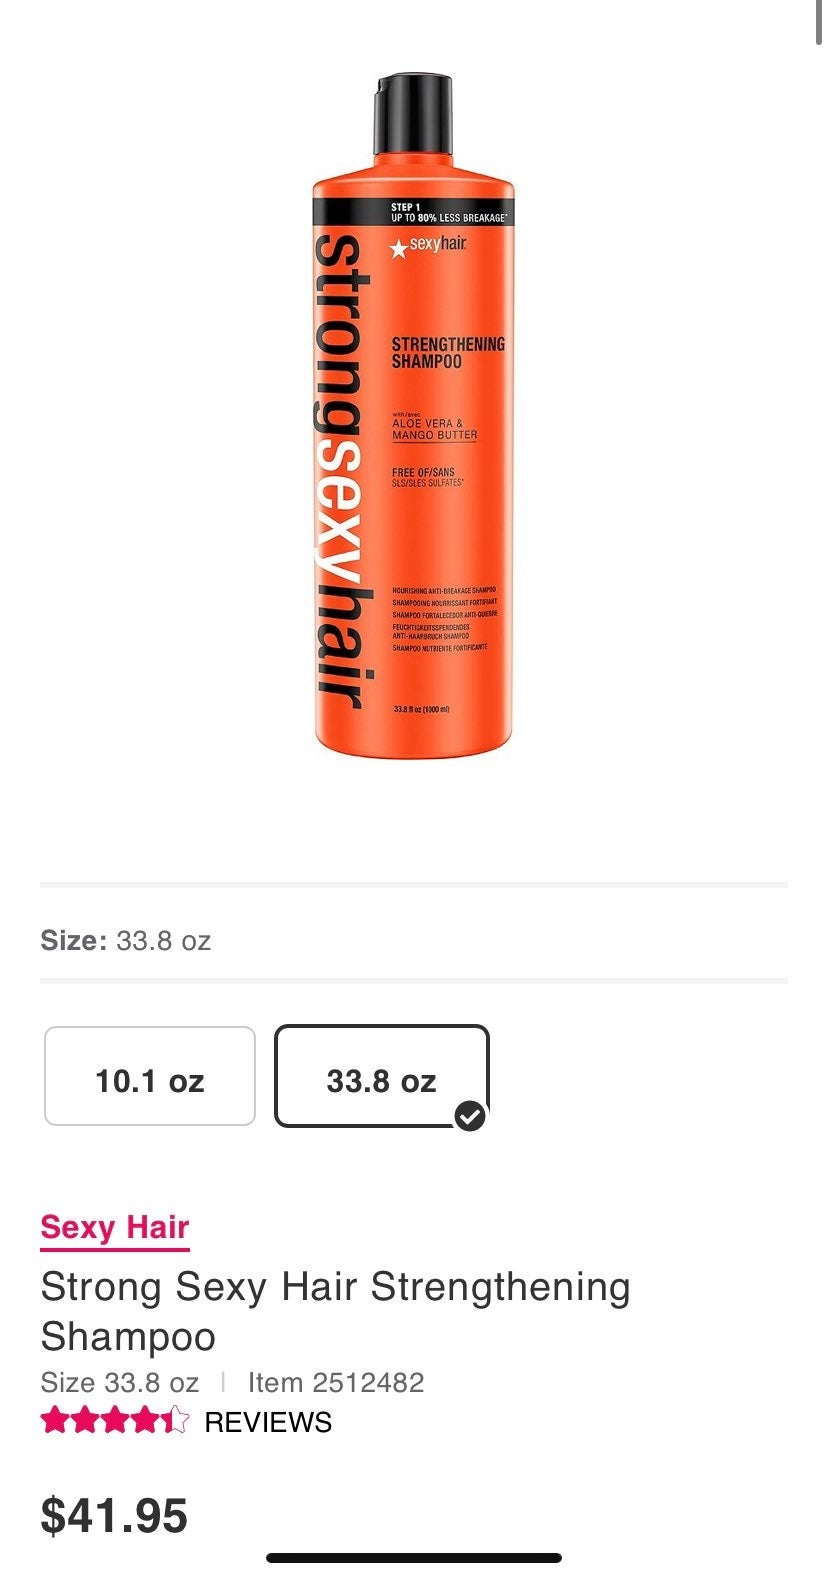 Strong Sexy Hair Strengthening shampoo/c